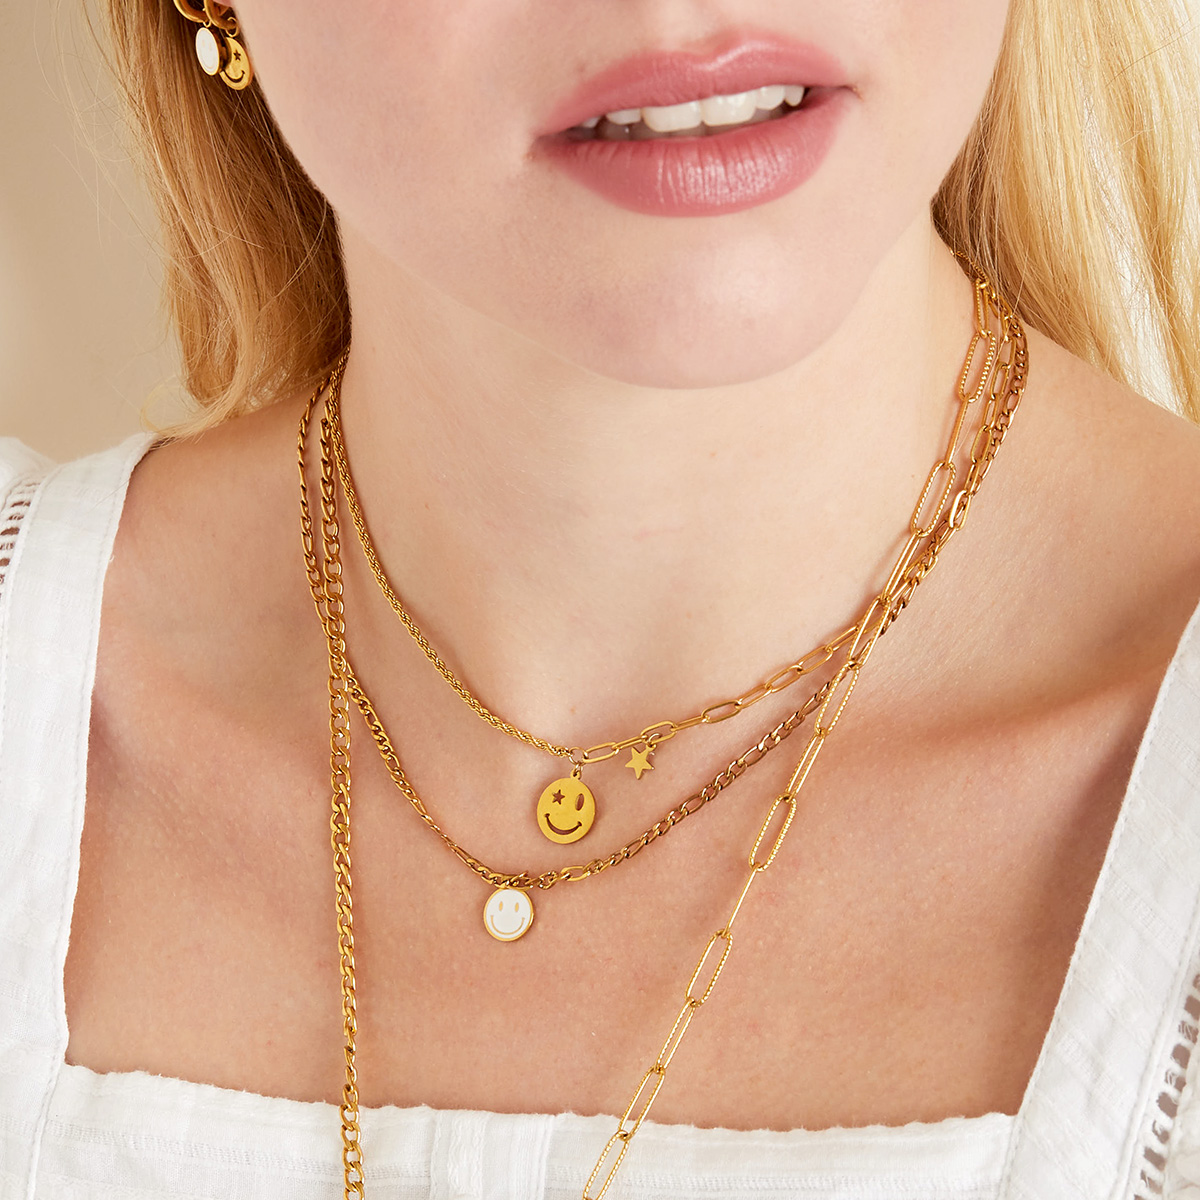 Ketting Smiley Face Goud